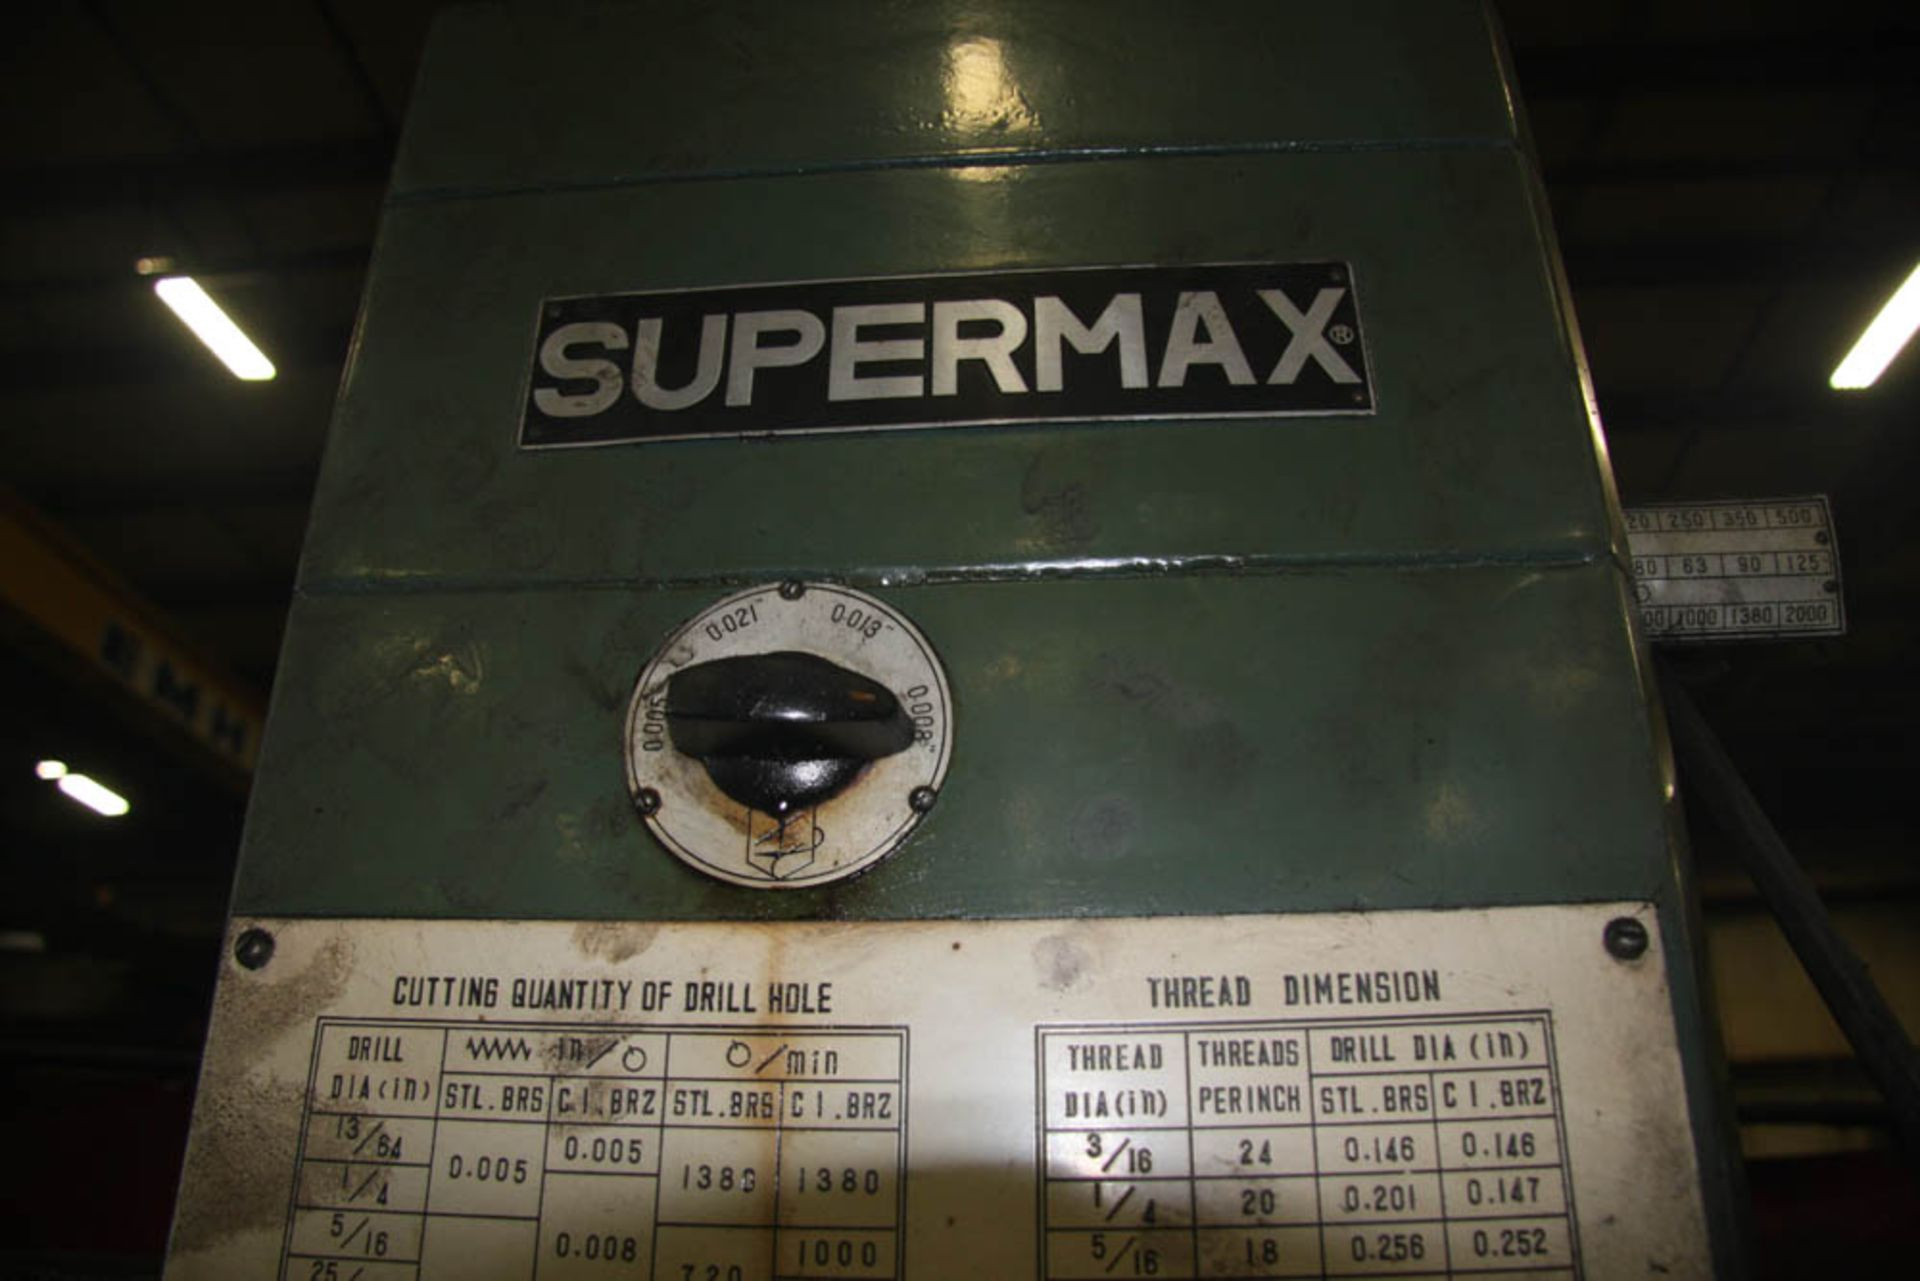 """SUPERMAX MDL. HRD-1000 3' X 9' RADIAL ARM DRILL, POWER ELEVATION, COOLANT, 17"""" X 18"""" X 18"""" T-SLOTTED - Image 7 of 11"""